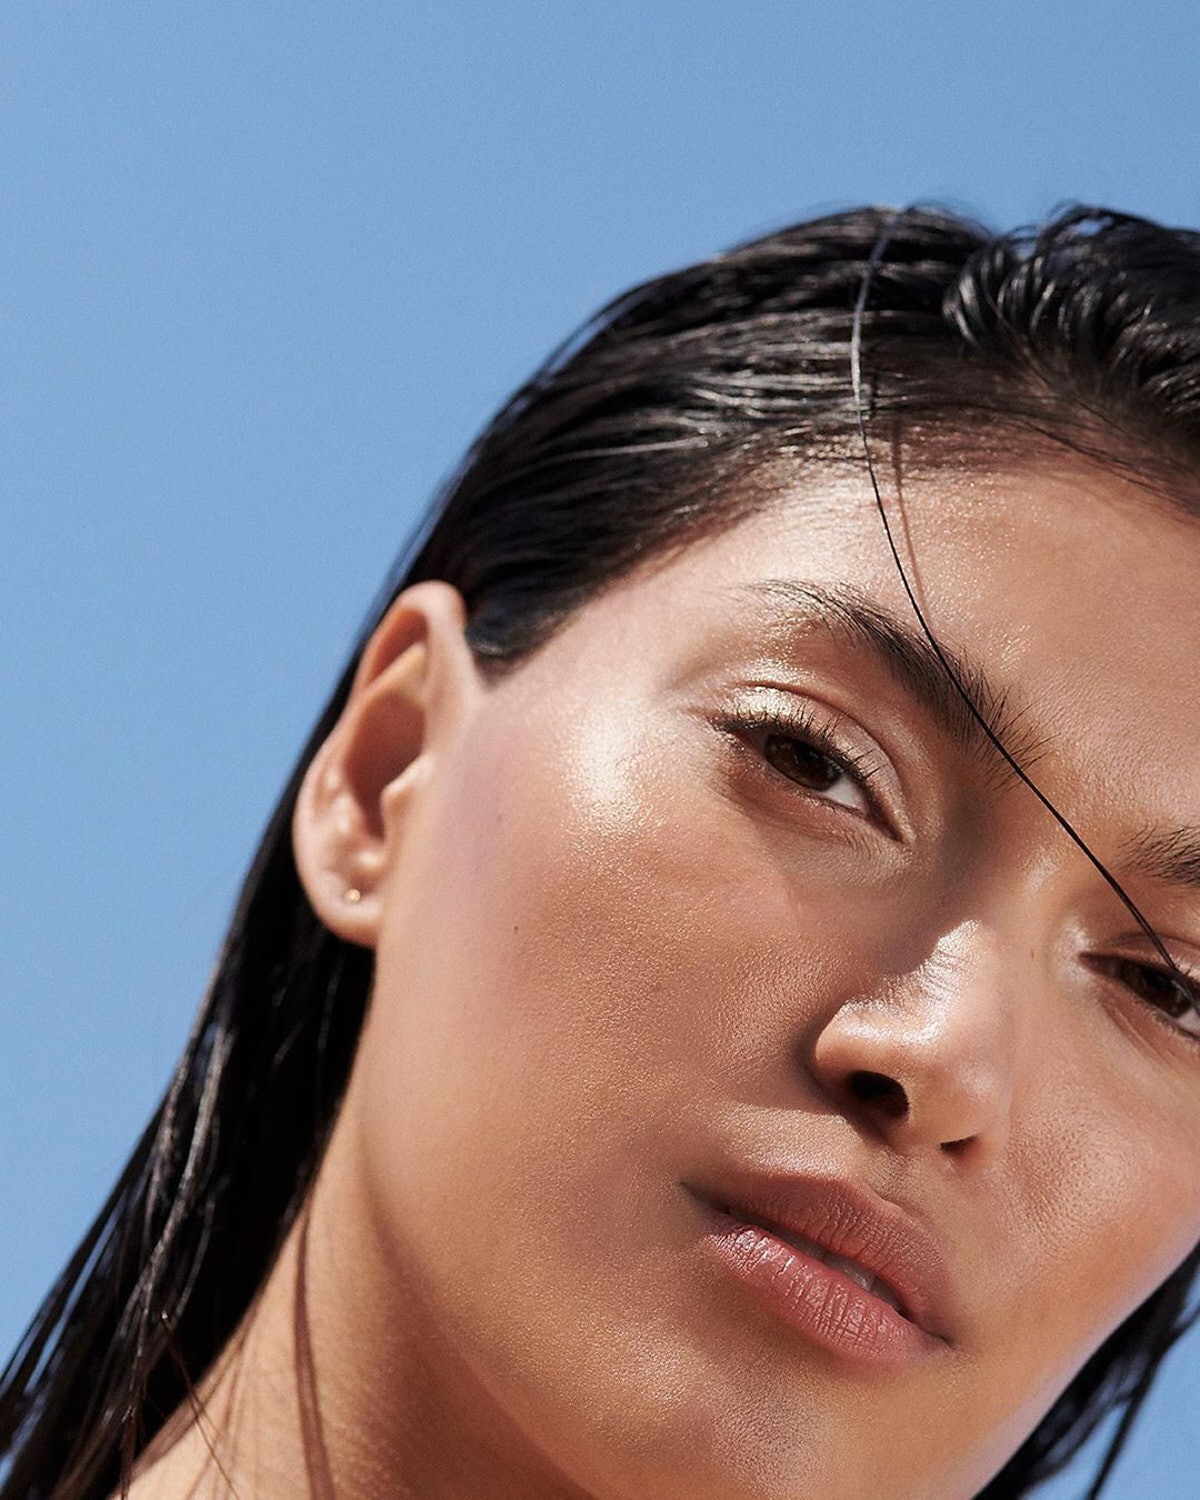 Beautycounter's new All Bright C Serum produces glowing, even-toned skin